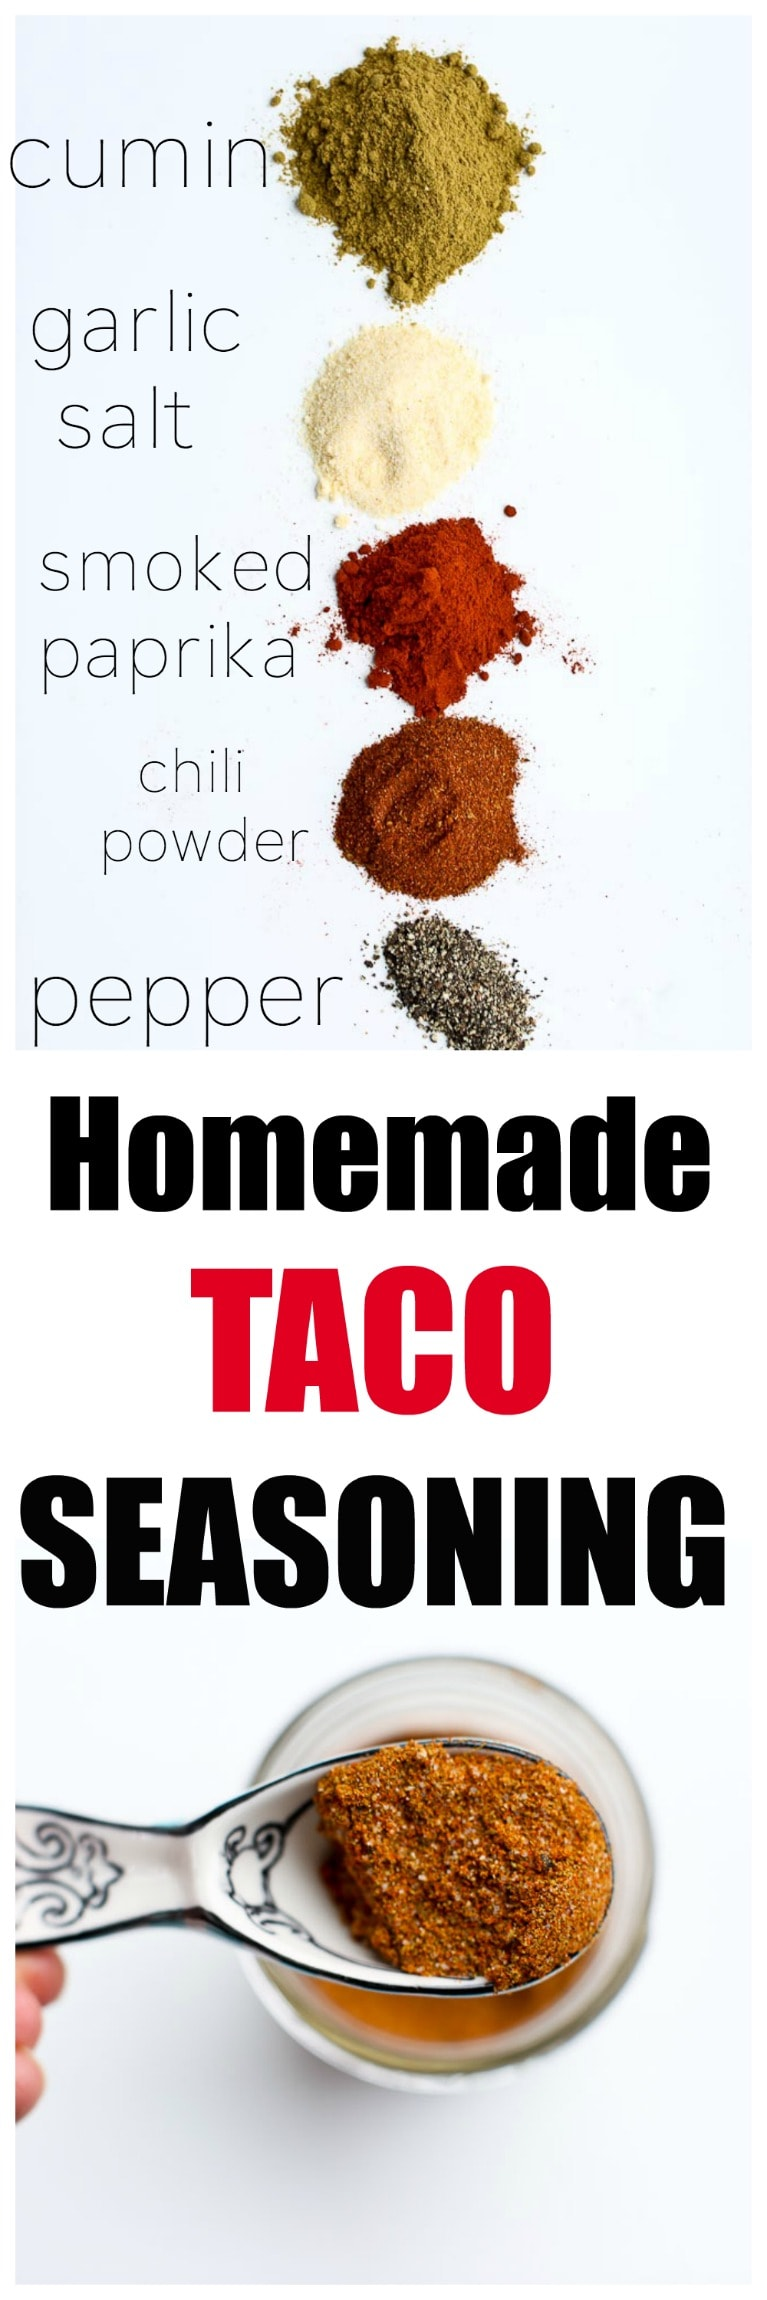 Homemade DIY Taco Seasoning Recipe. Save money and it's healthy with no added starches, oils, or MSG like you find in the store bought stuff.